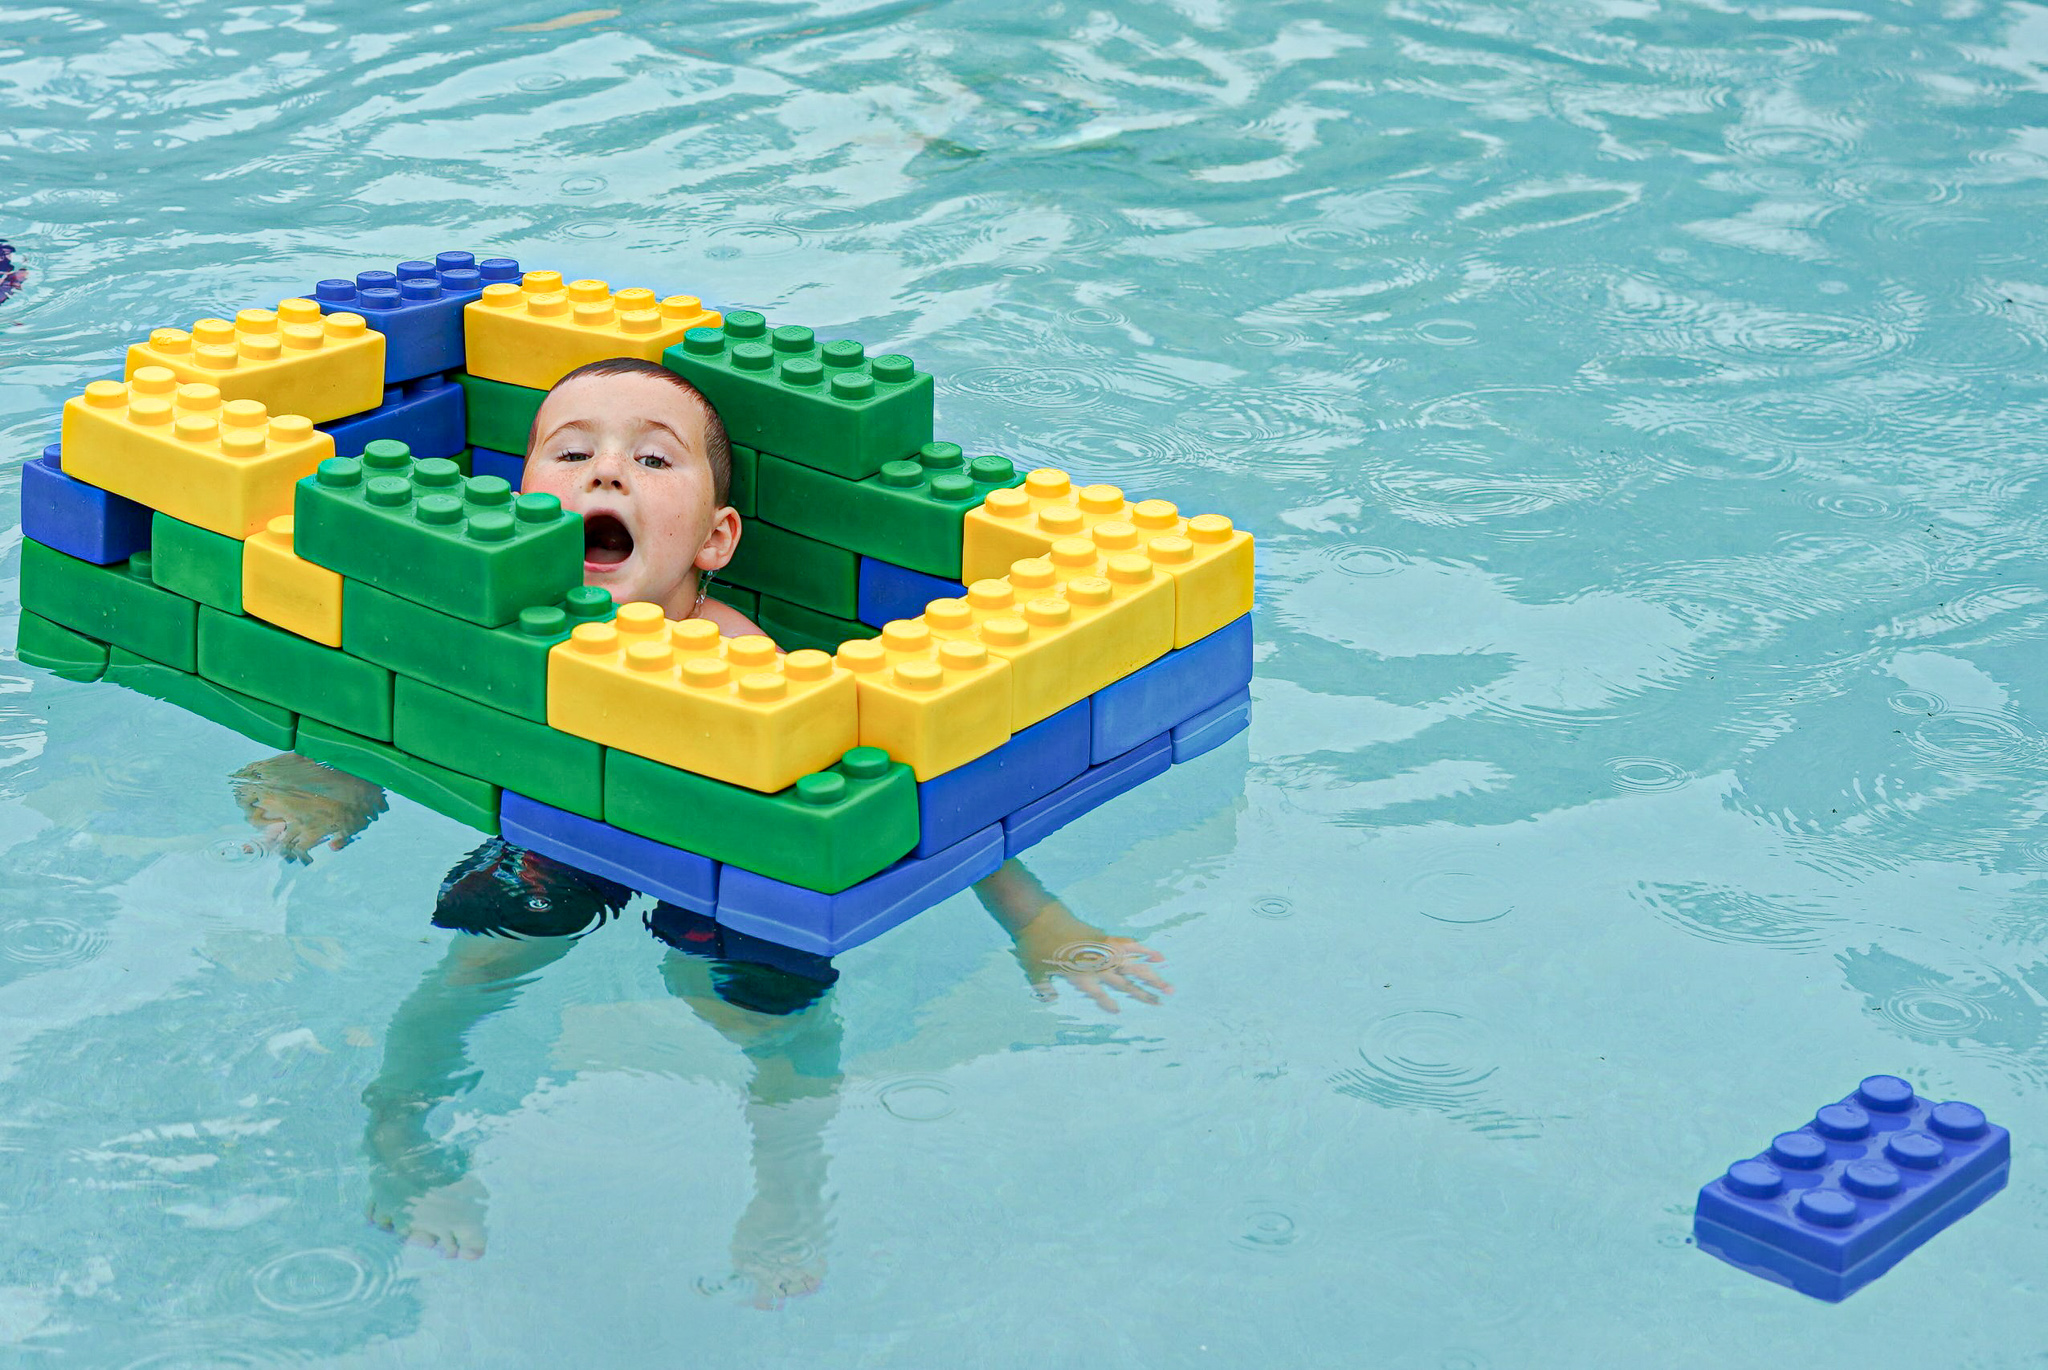 Little boy floating with a lego float in the pool.   A Guide to LEGOLAND Hotels in Florida